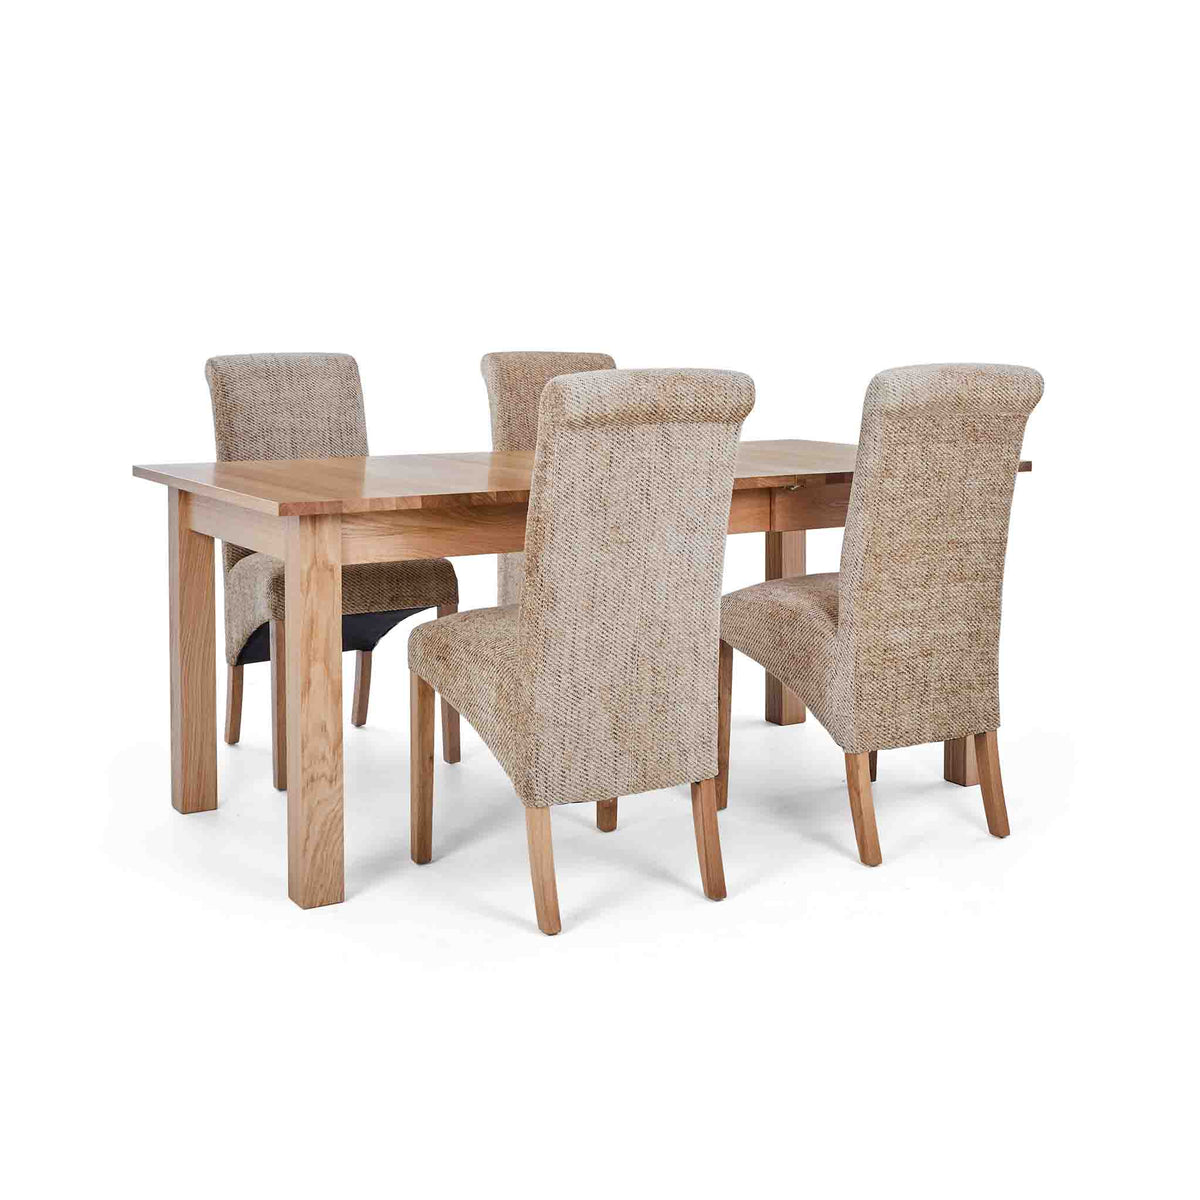 4 Wheat Bibury Chairs with the Falmouth Oak Large Extending Dining Table